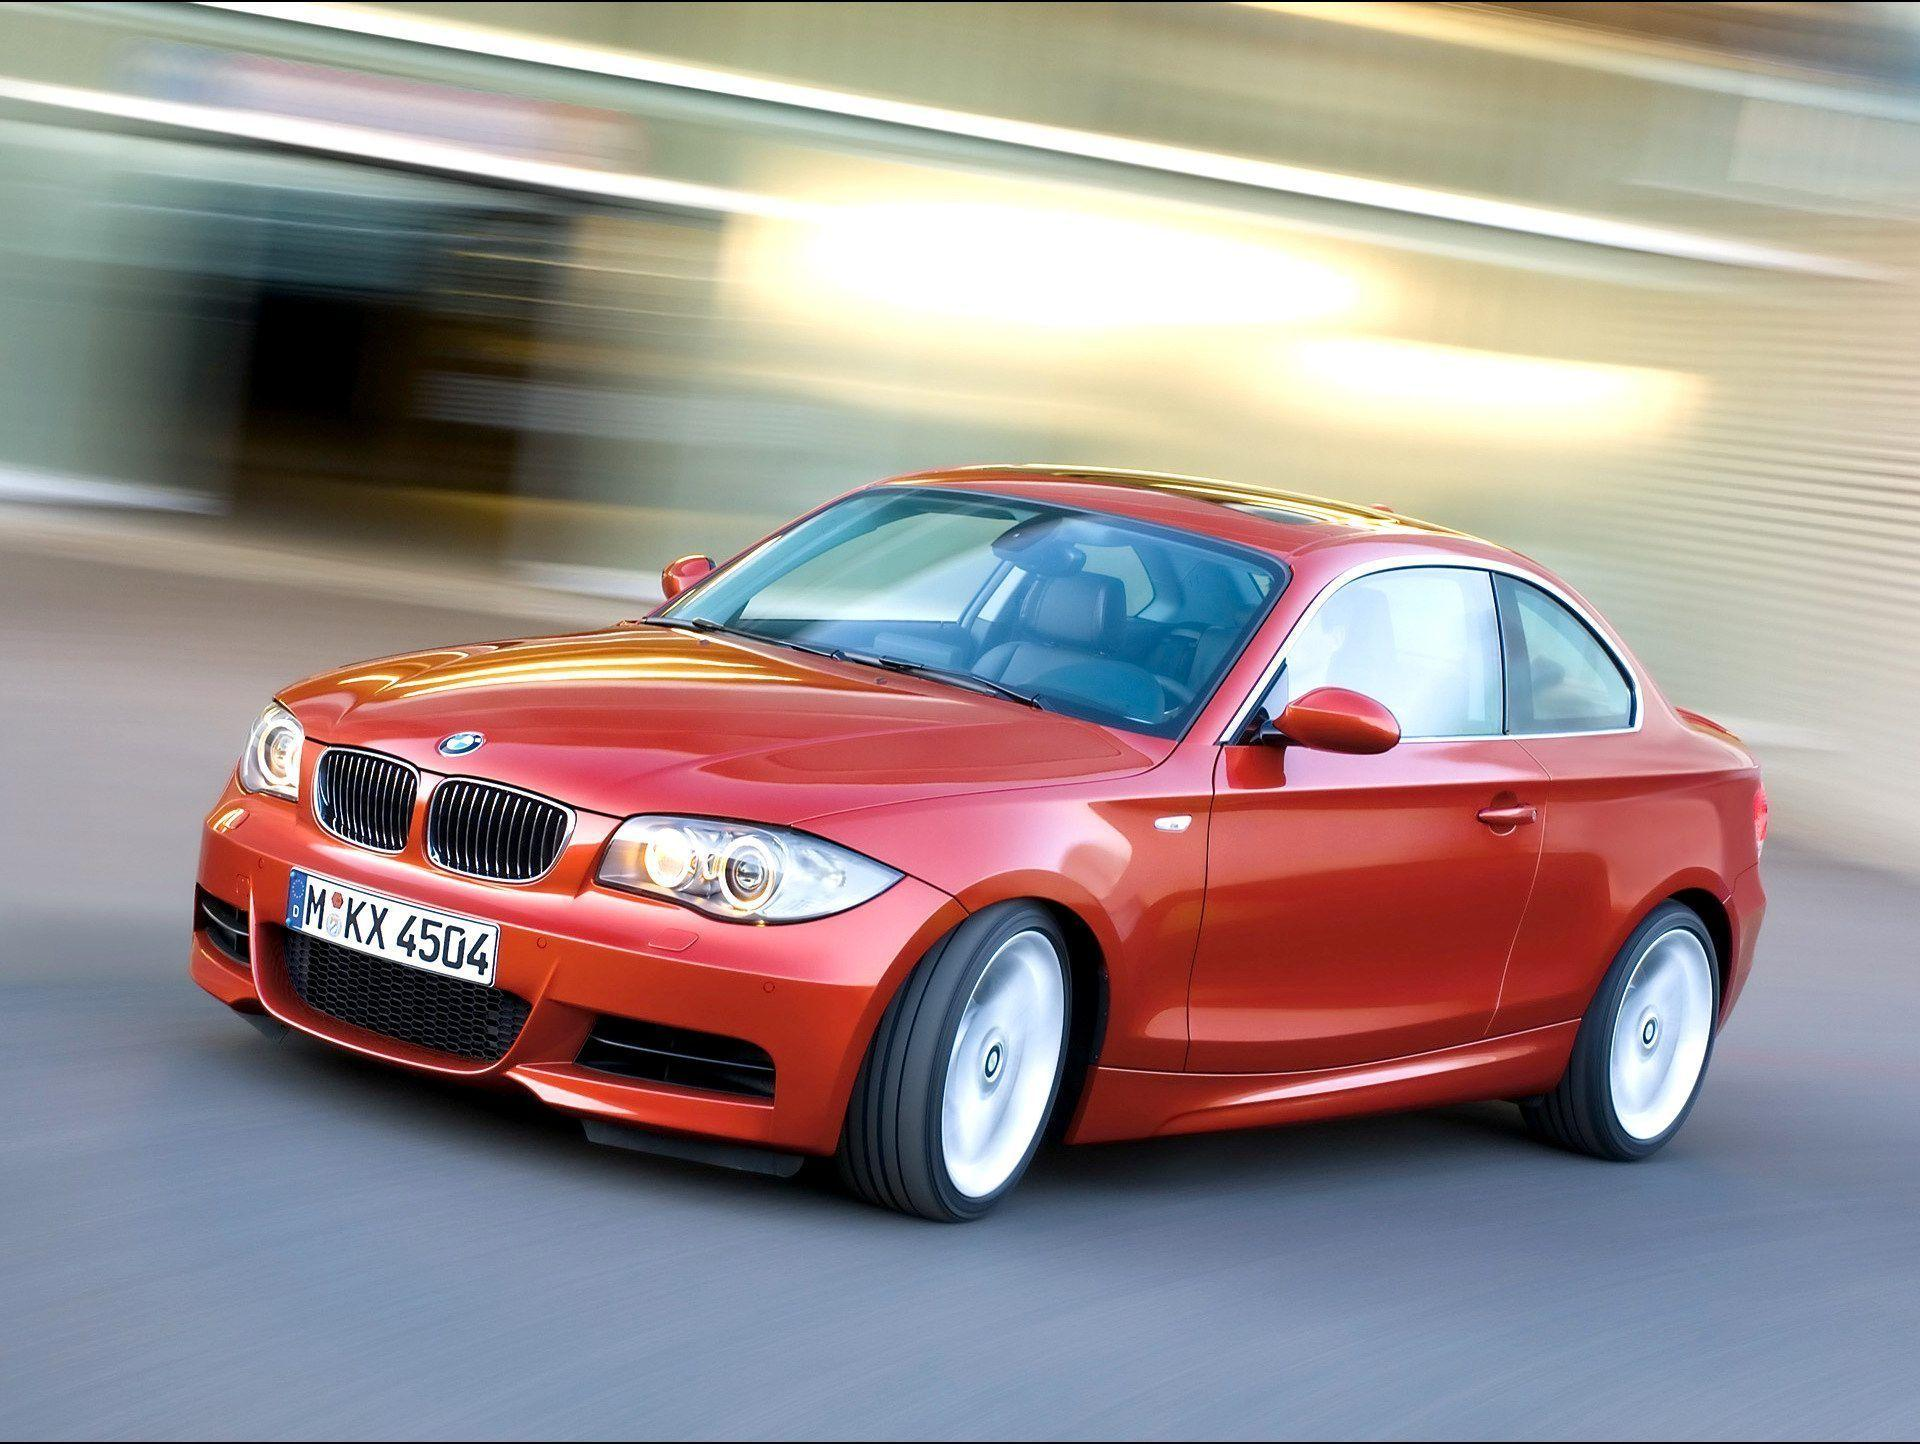 2008 BMW 1 Series Coupe Wallpaper 09 - 1920x1440